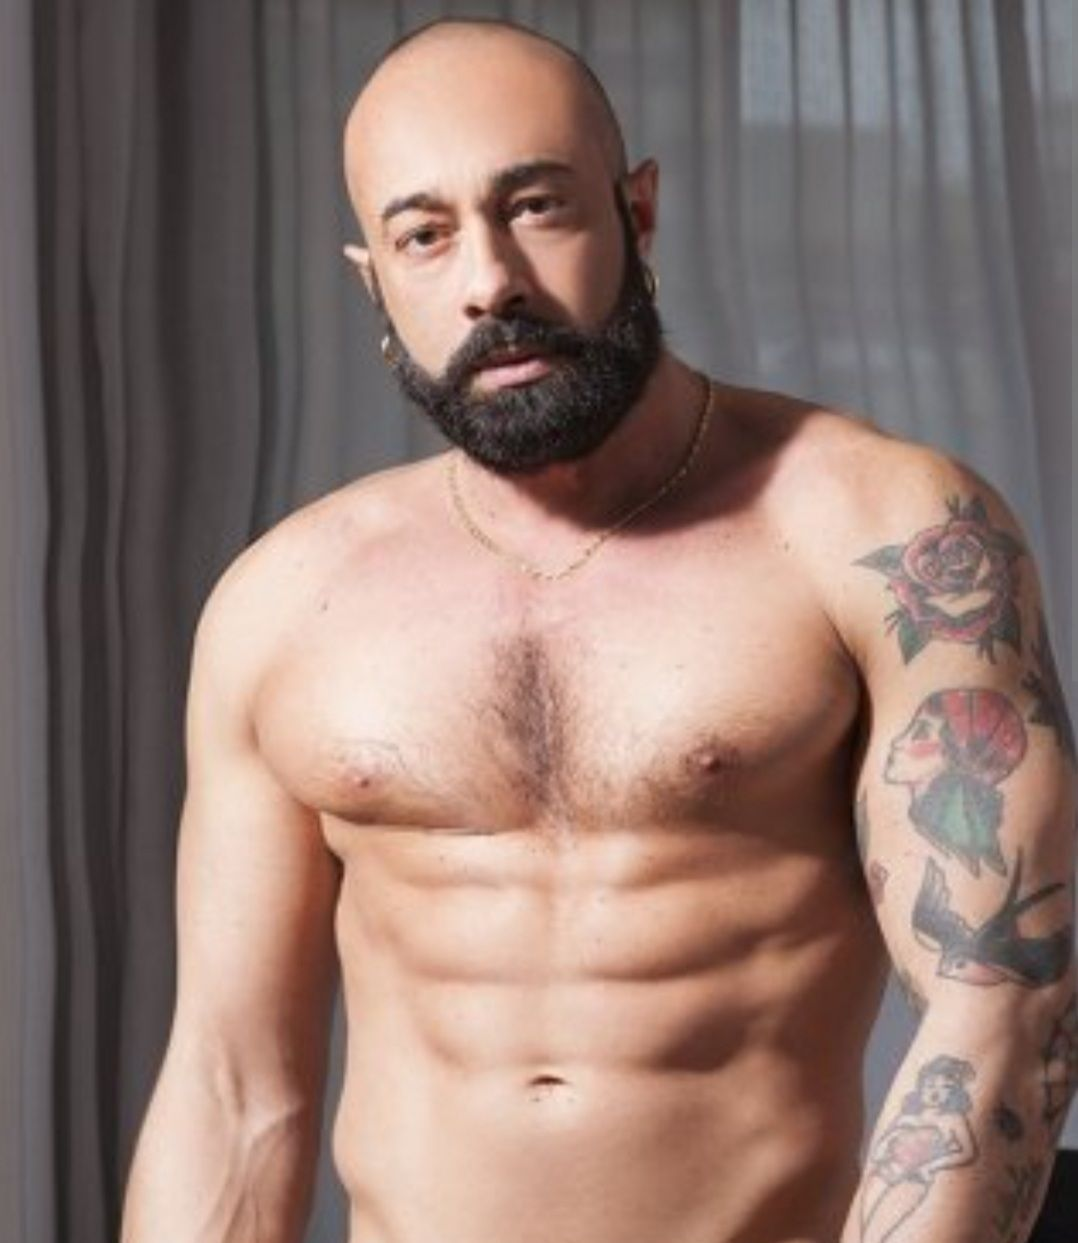 GIANNI MAGGIO 24 cm onlyfans leaked onlyfans leaked